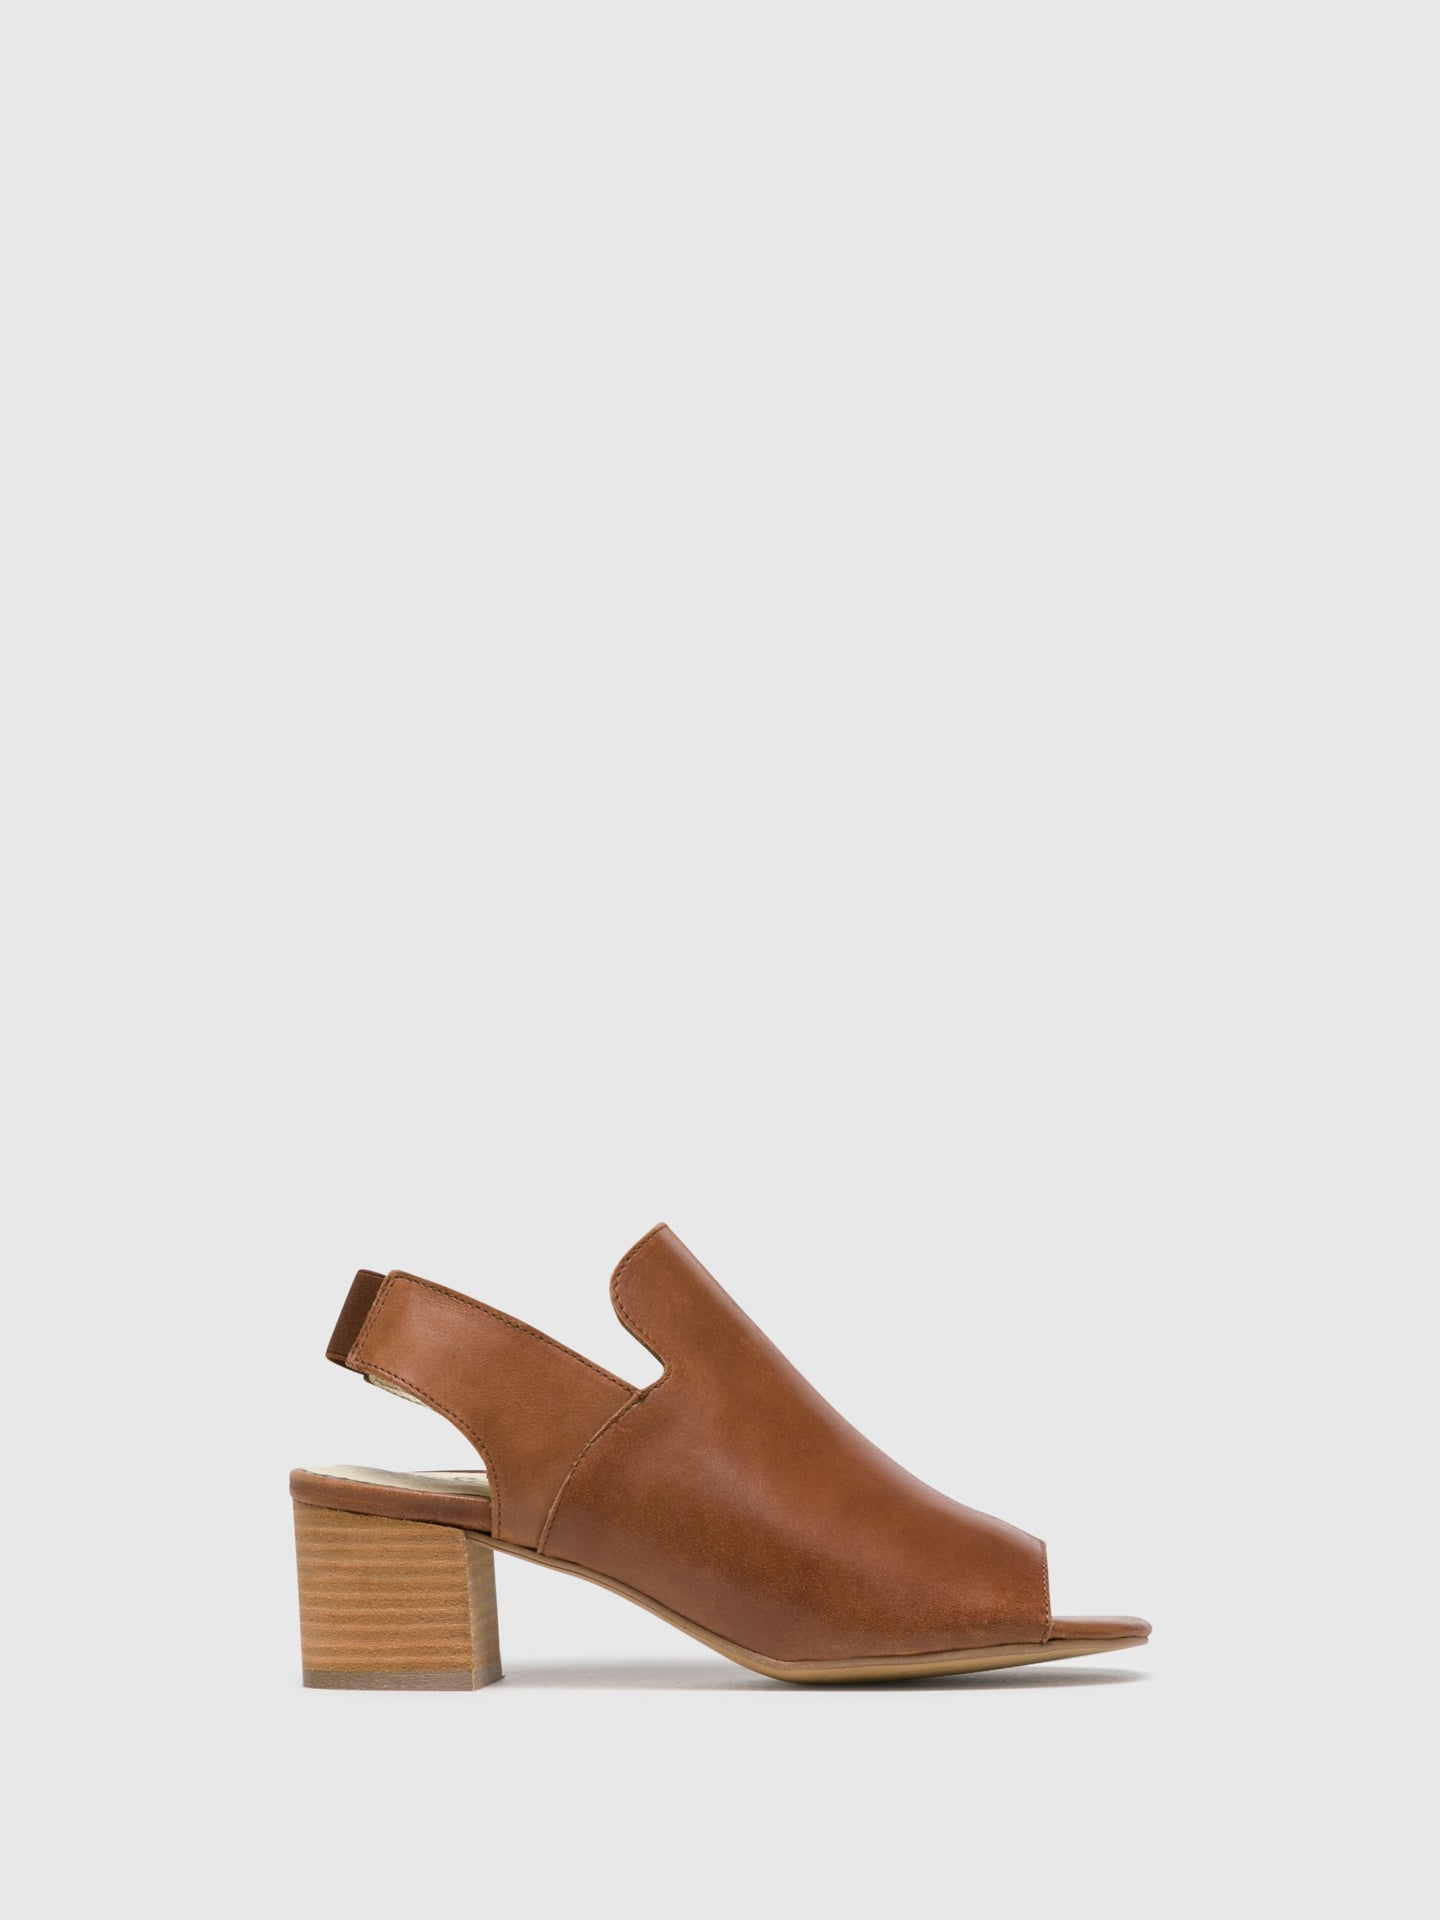 Bos&Co Brown Heel Sandals